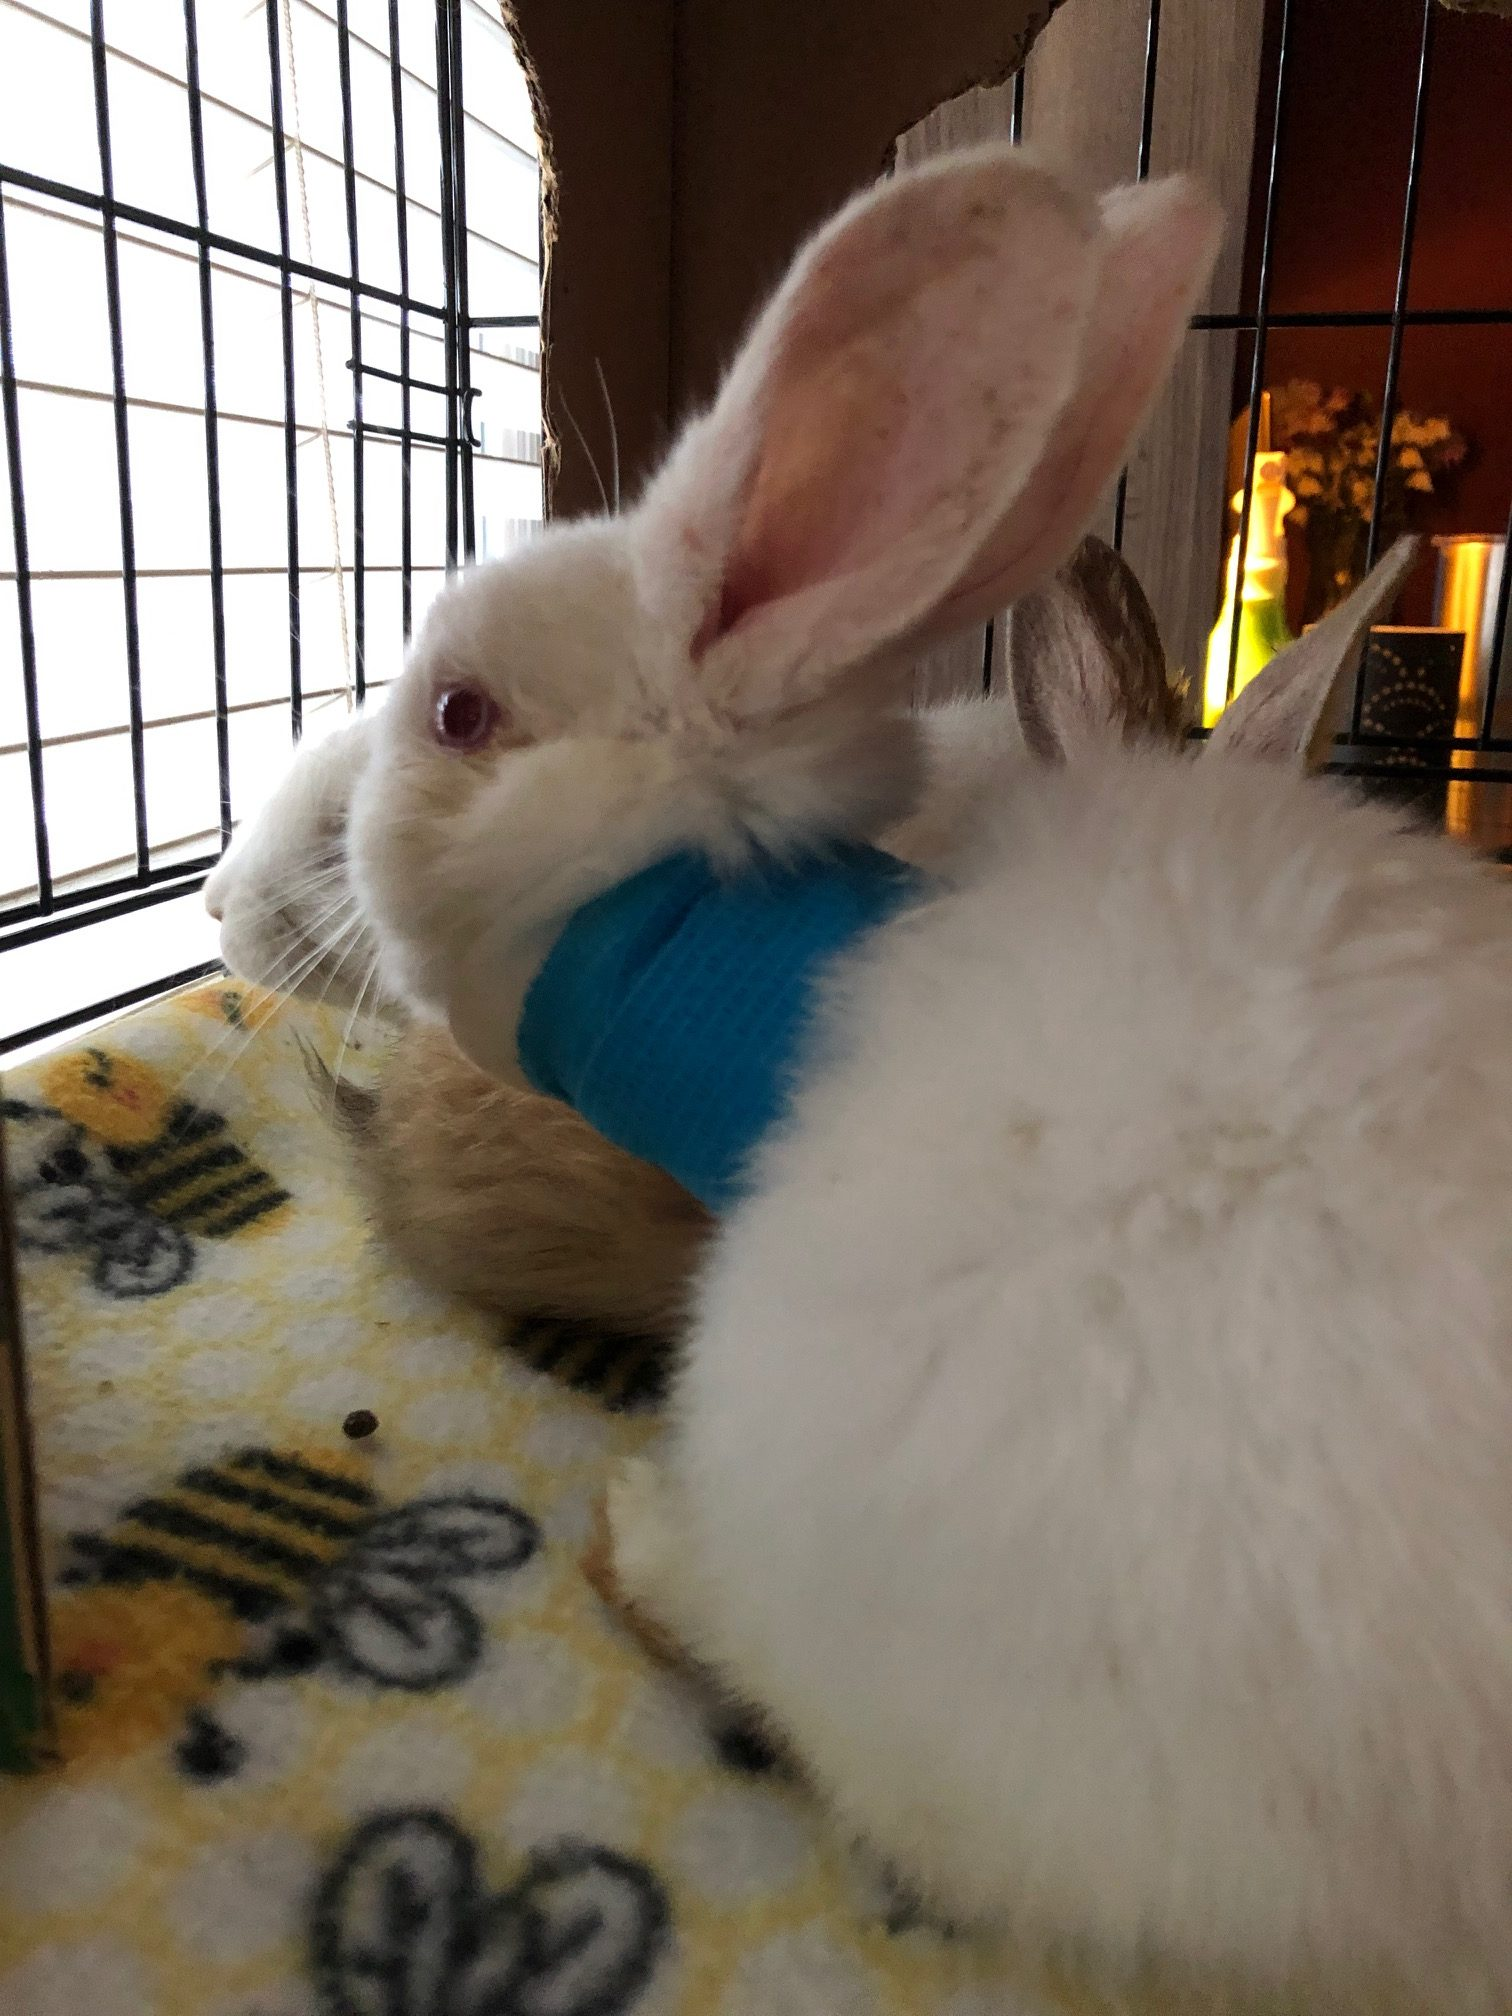 Latest Emergency Rescue Grant goes to Bunny Burrow of Texas